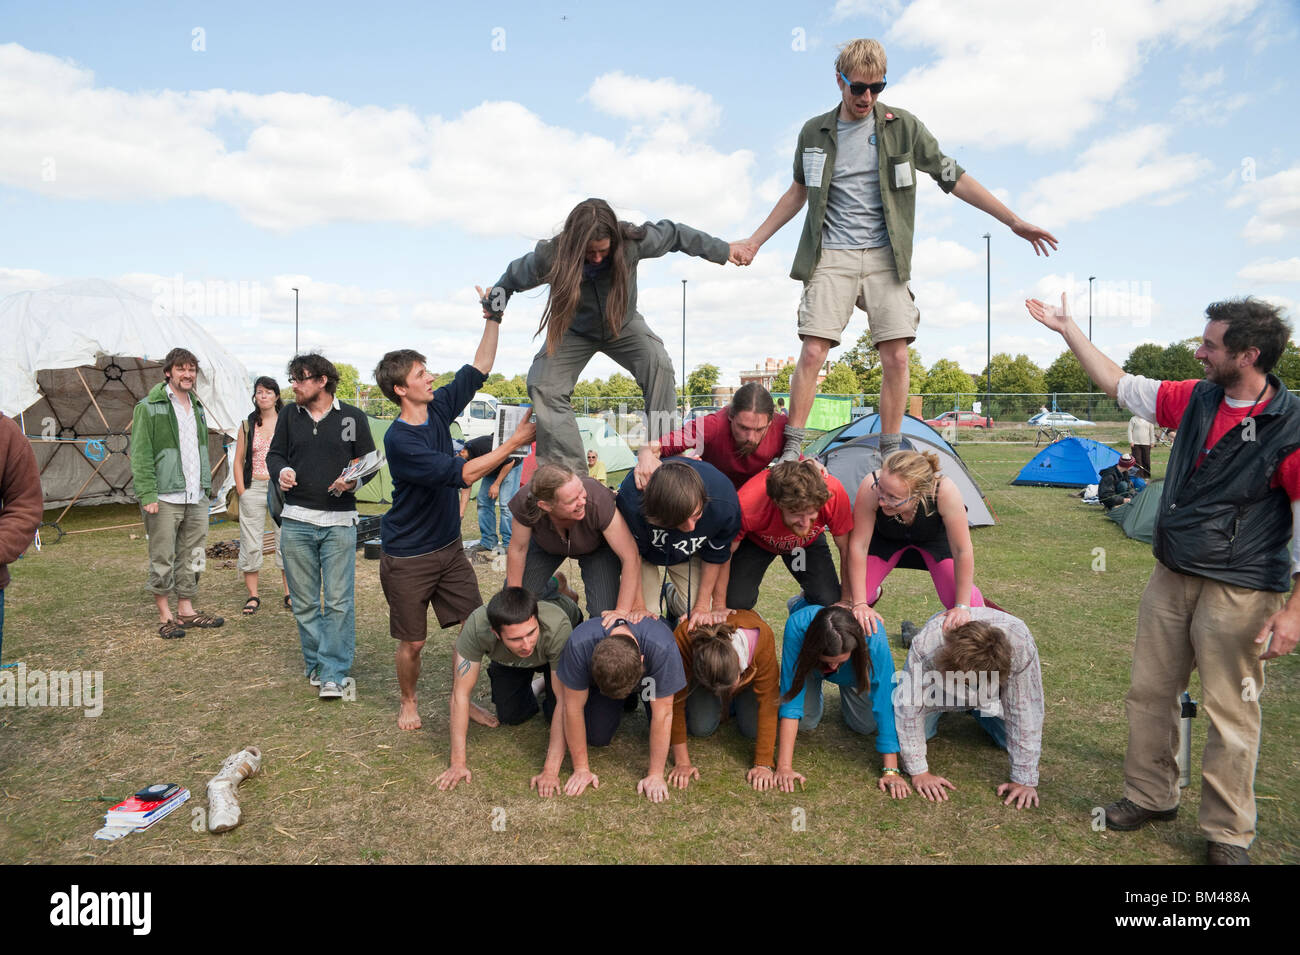 Human Pyramid Stock Photos & Human Pyramid Stock Images - Alamy